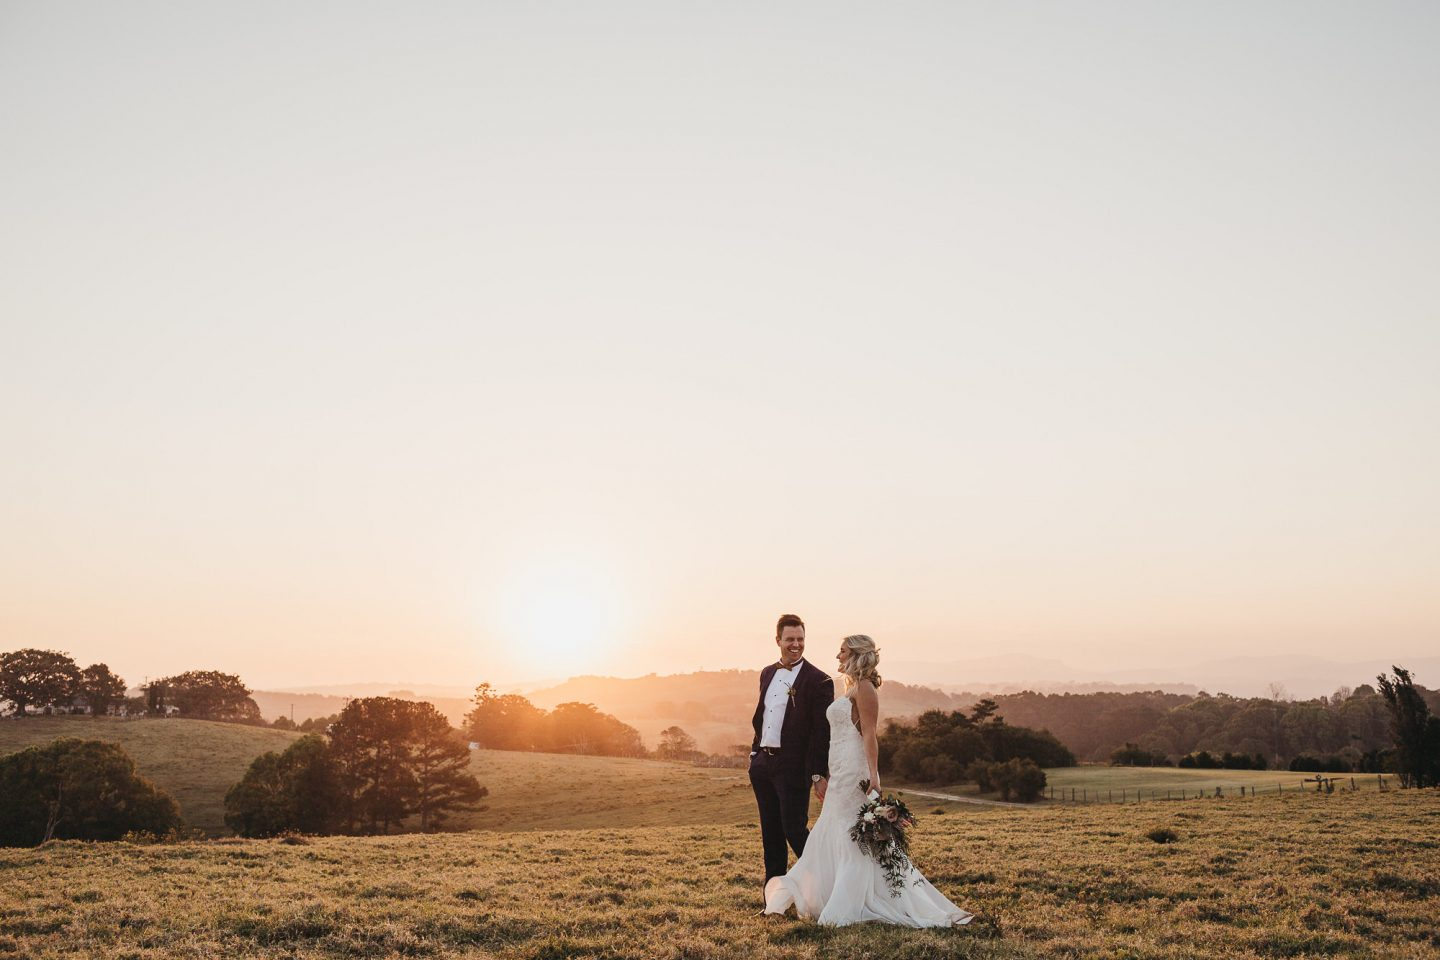 Byronviewfarm views - Byron Bay Weddings